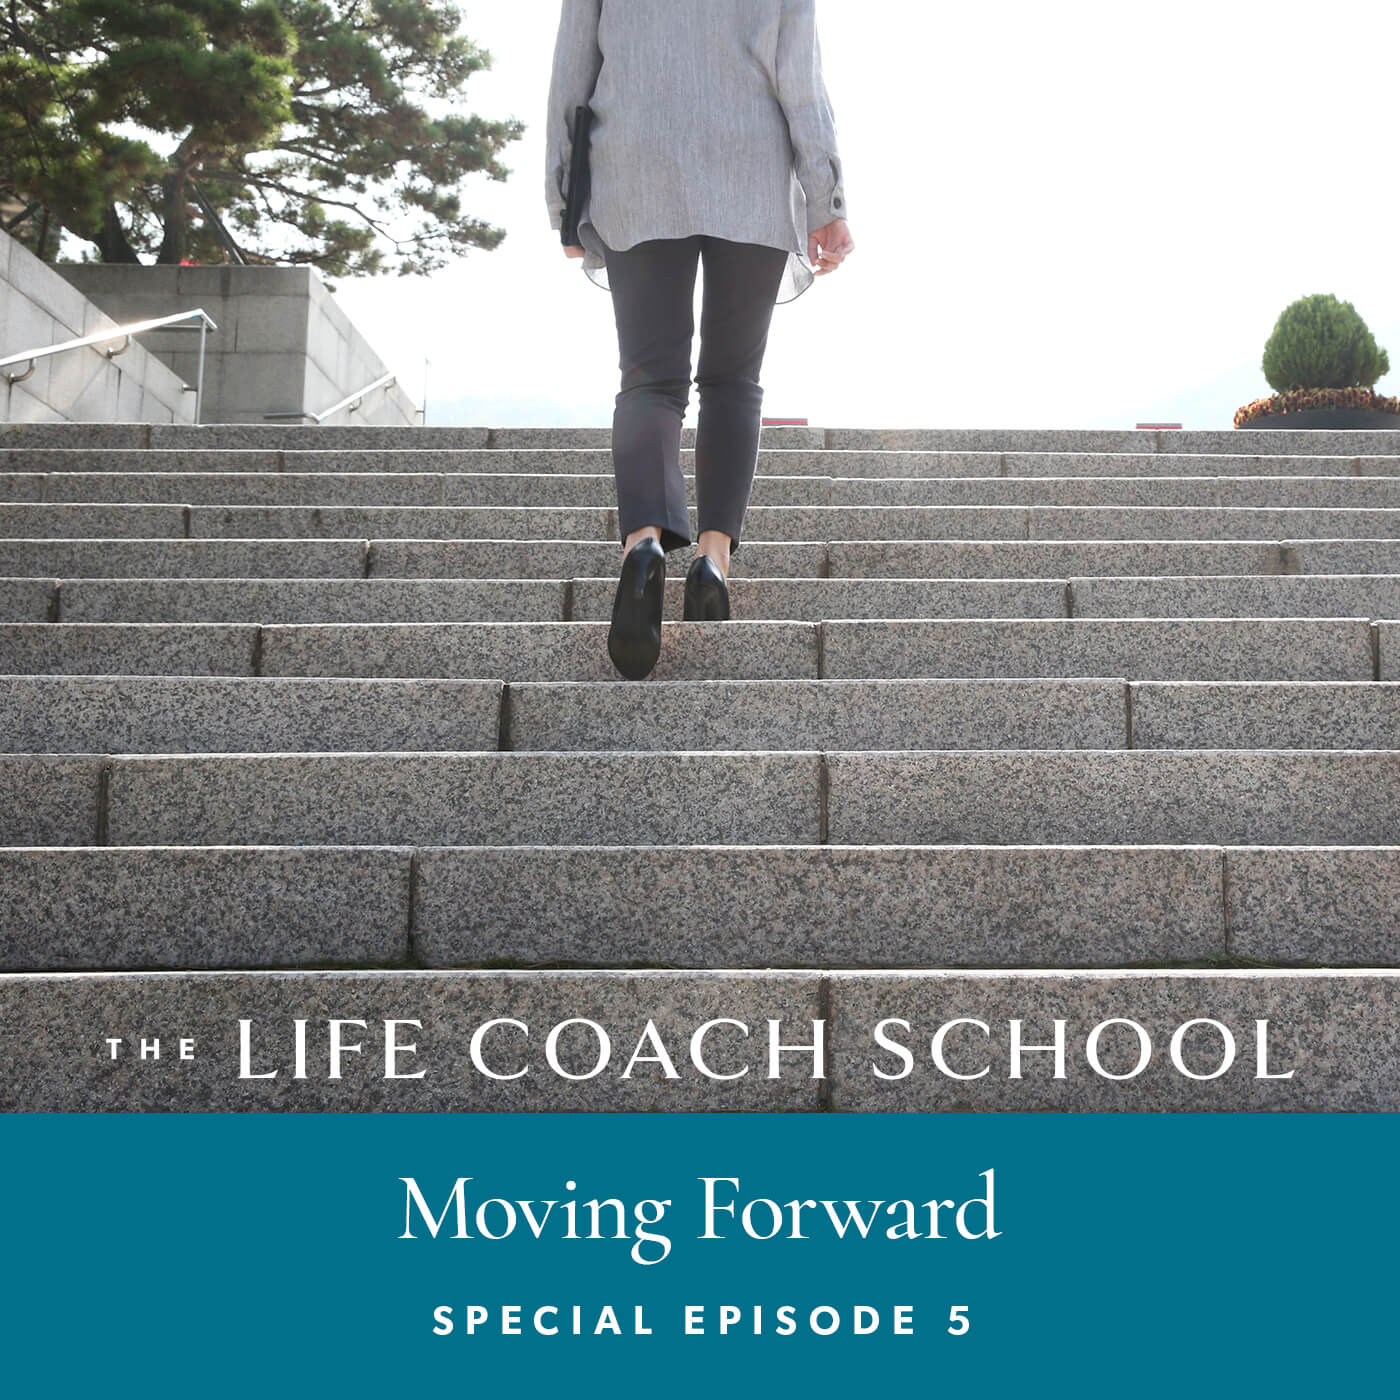 The Life Coach School Podcast with Brooke Castillo | Special Episode | Moving Forward 5